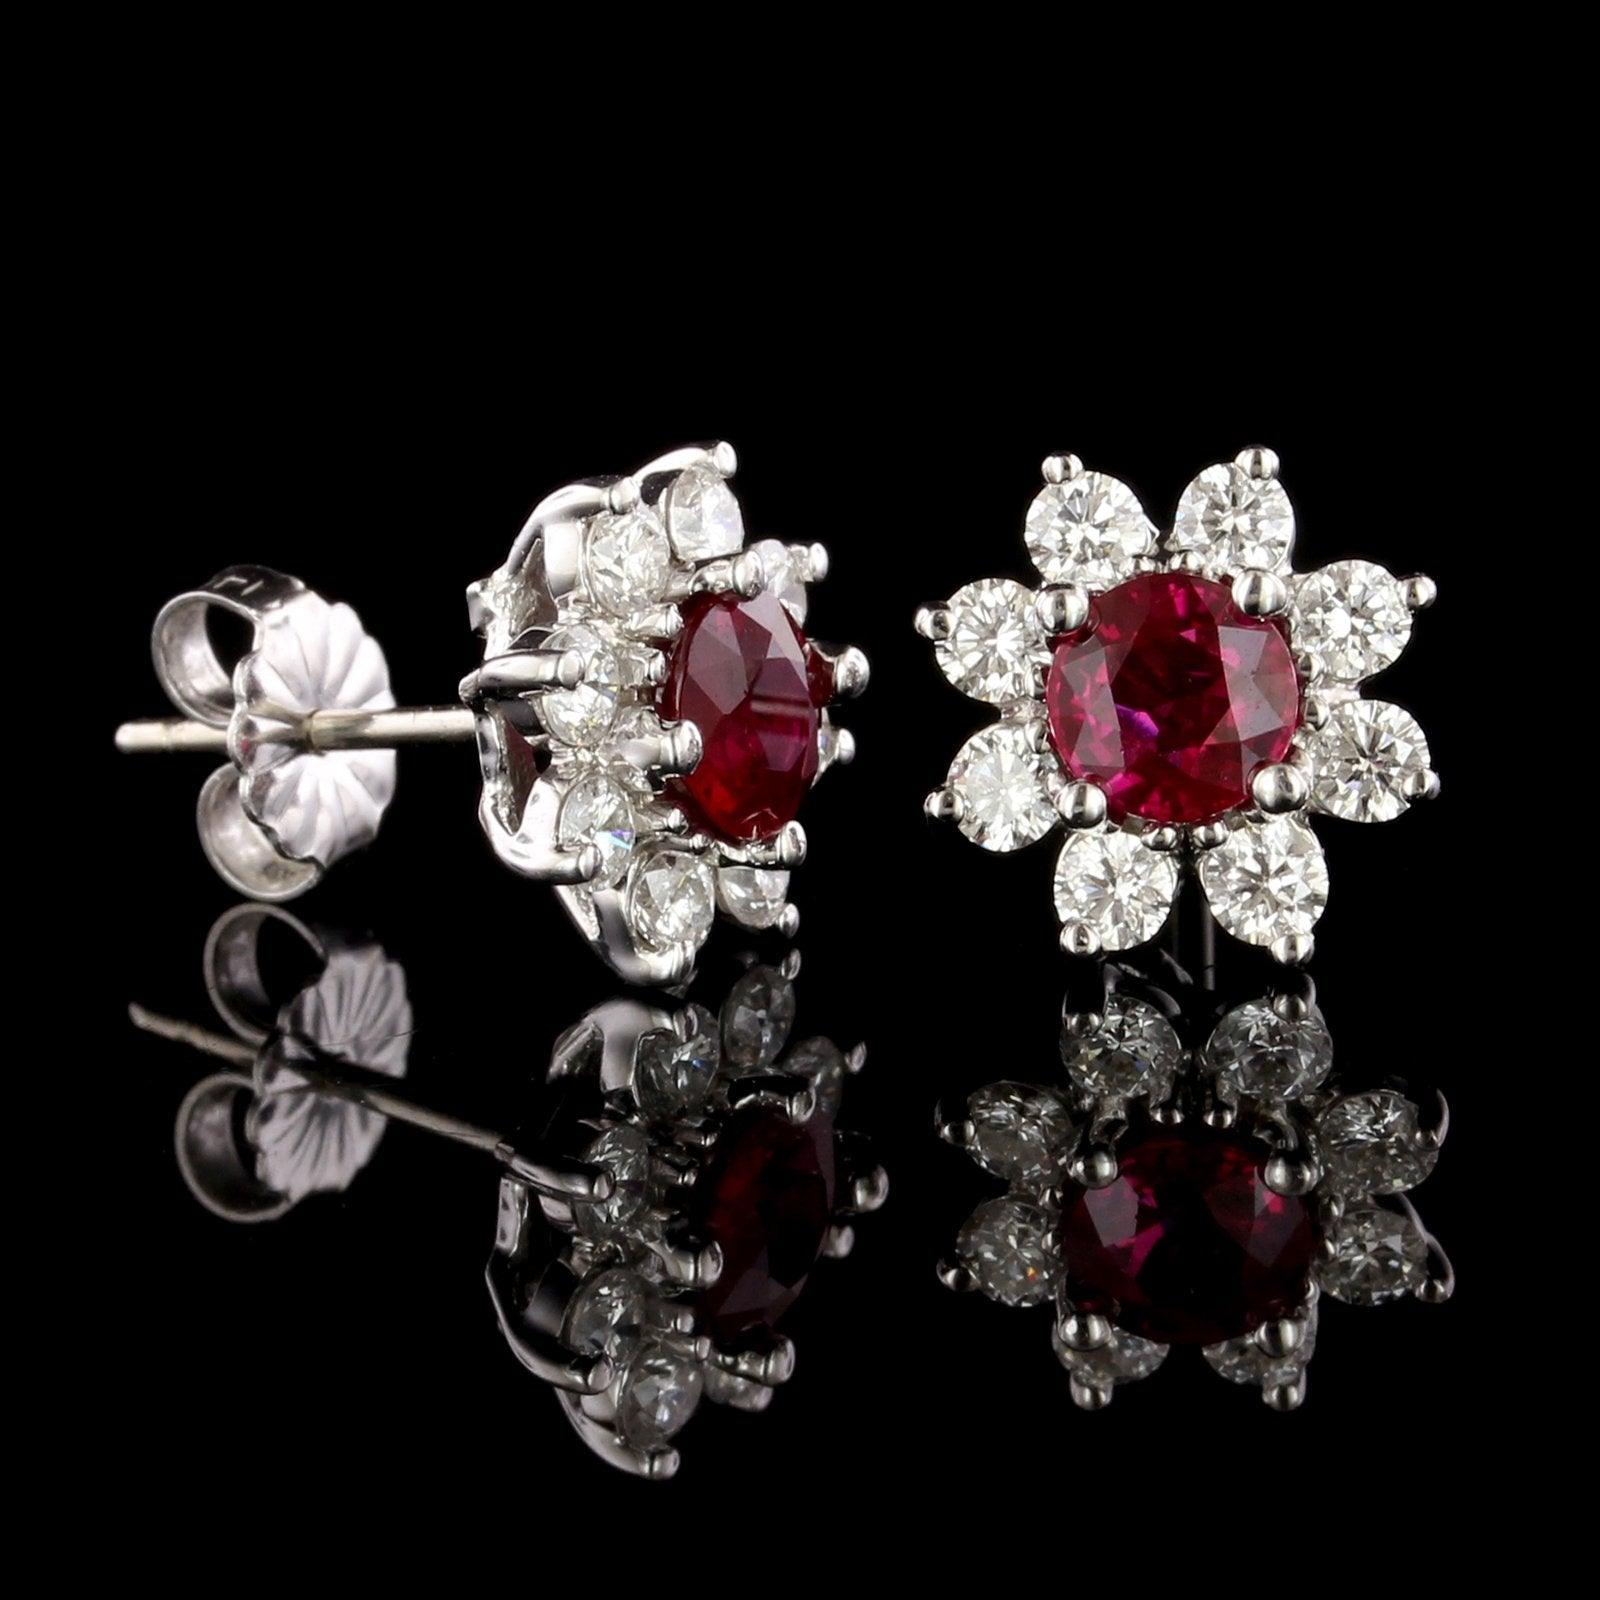 18K White Gold Ruby and Diamond Earrings